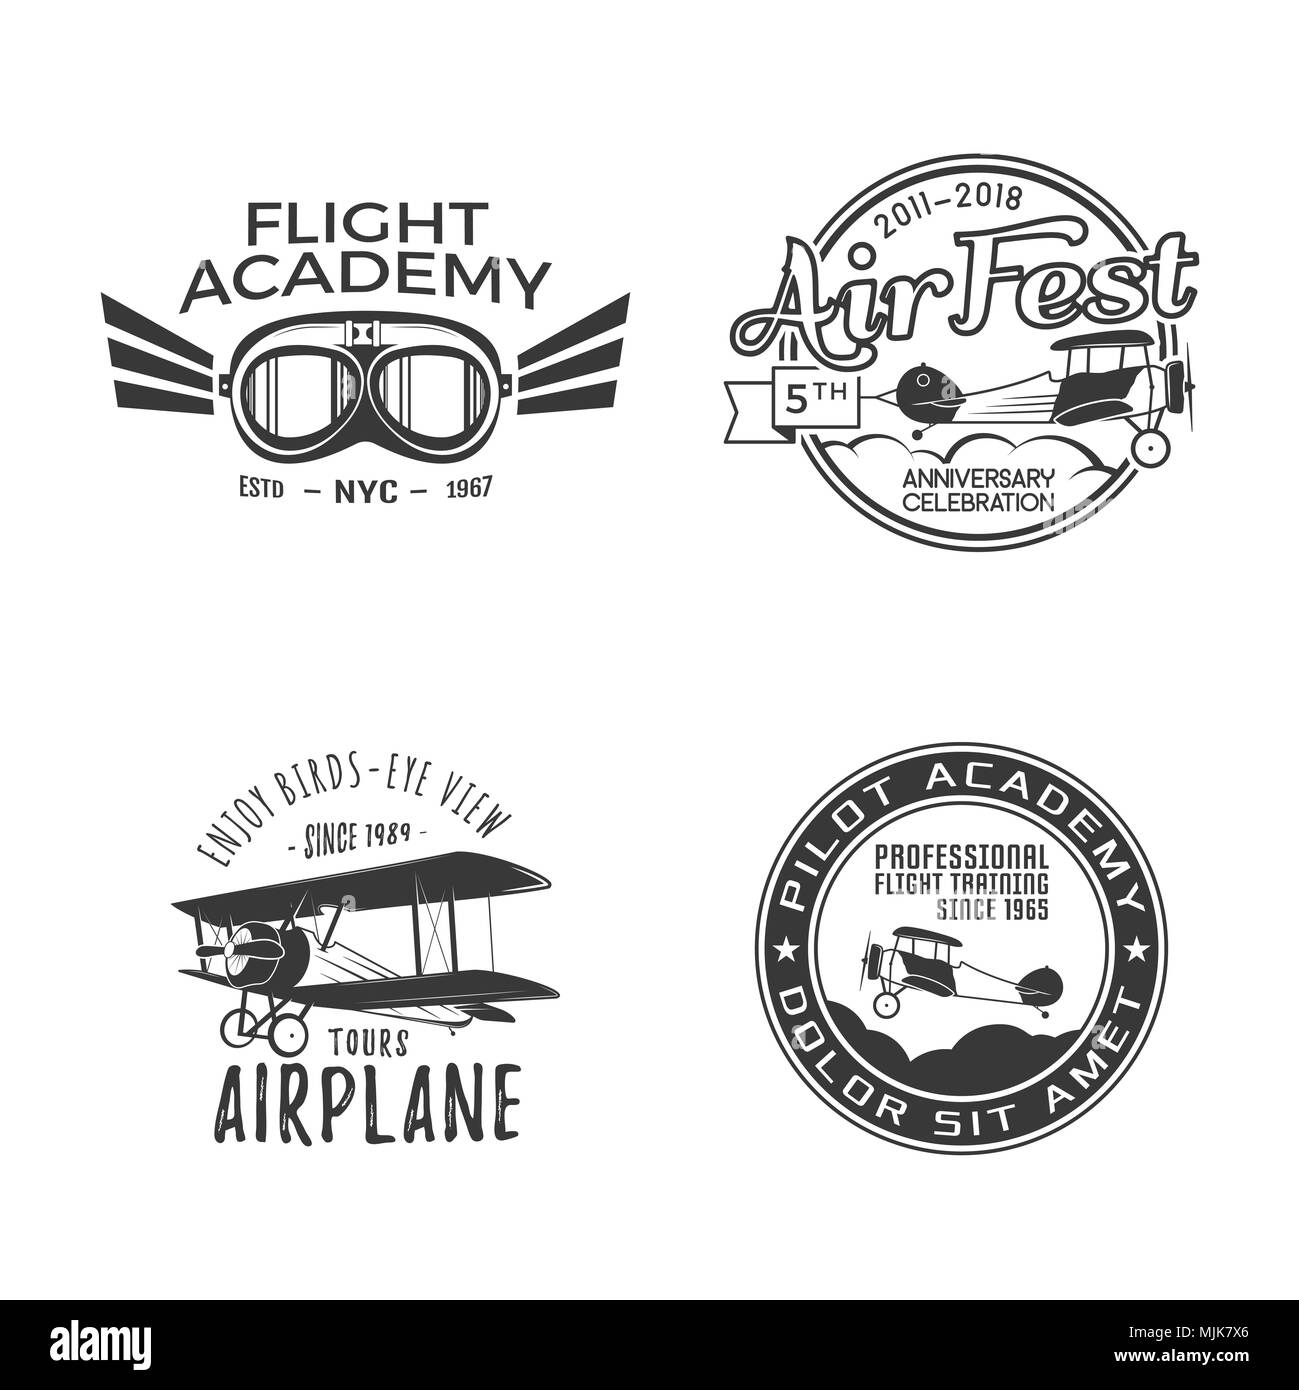 Vintage hand drawn old fly stamps. Travel or business airplane tour emblems. Airplane logo designs. Retro aerial badge. Pilot school logos. Plane tee design, prints. Stock patches isolated - Stock Image